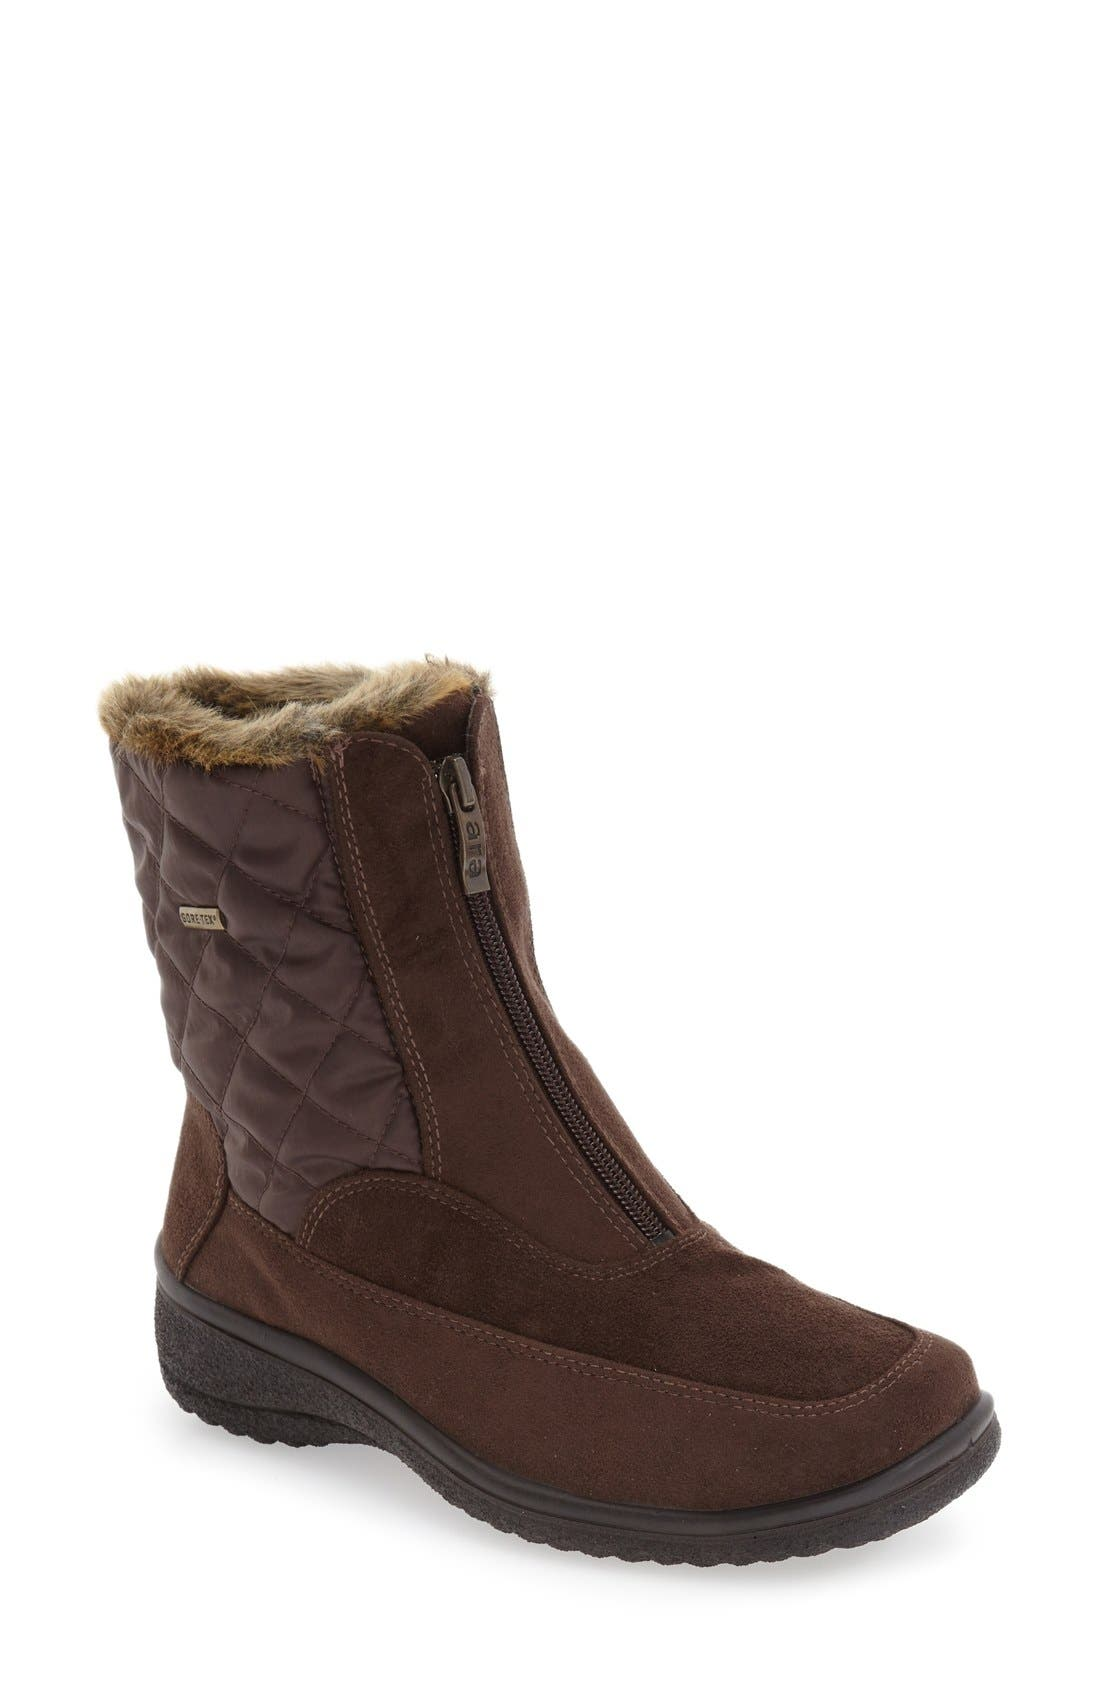 Main Image - ara 'Maeko' Waterproof Gore-Tex® Bootie (Women)